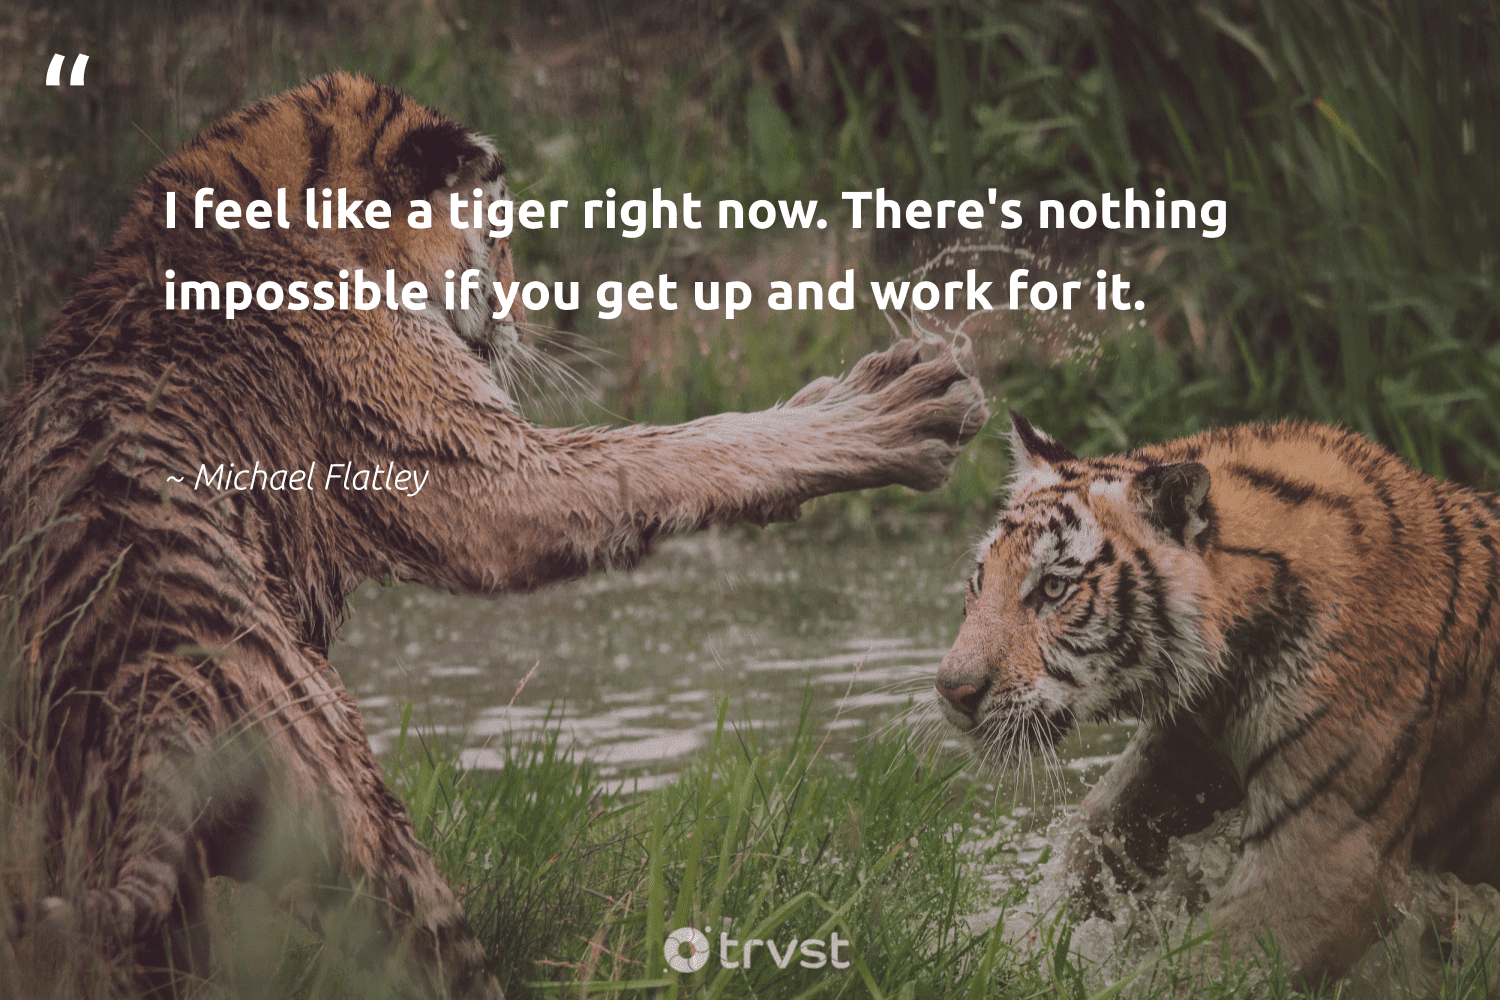 """""""I feel like a tiger right now. There's nothing impossible if you get up and work for it.""""  - Michael Flatley #trvst #quotes #tiger #tigers #dogood #ourplanetdaily #ecoconscious #conservation #gogreen #wildlifeprotection #beinspired #wild"""